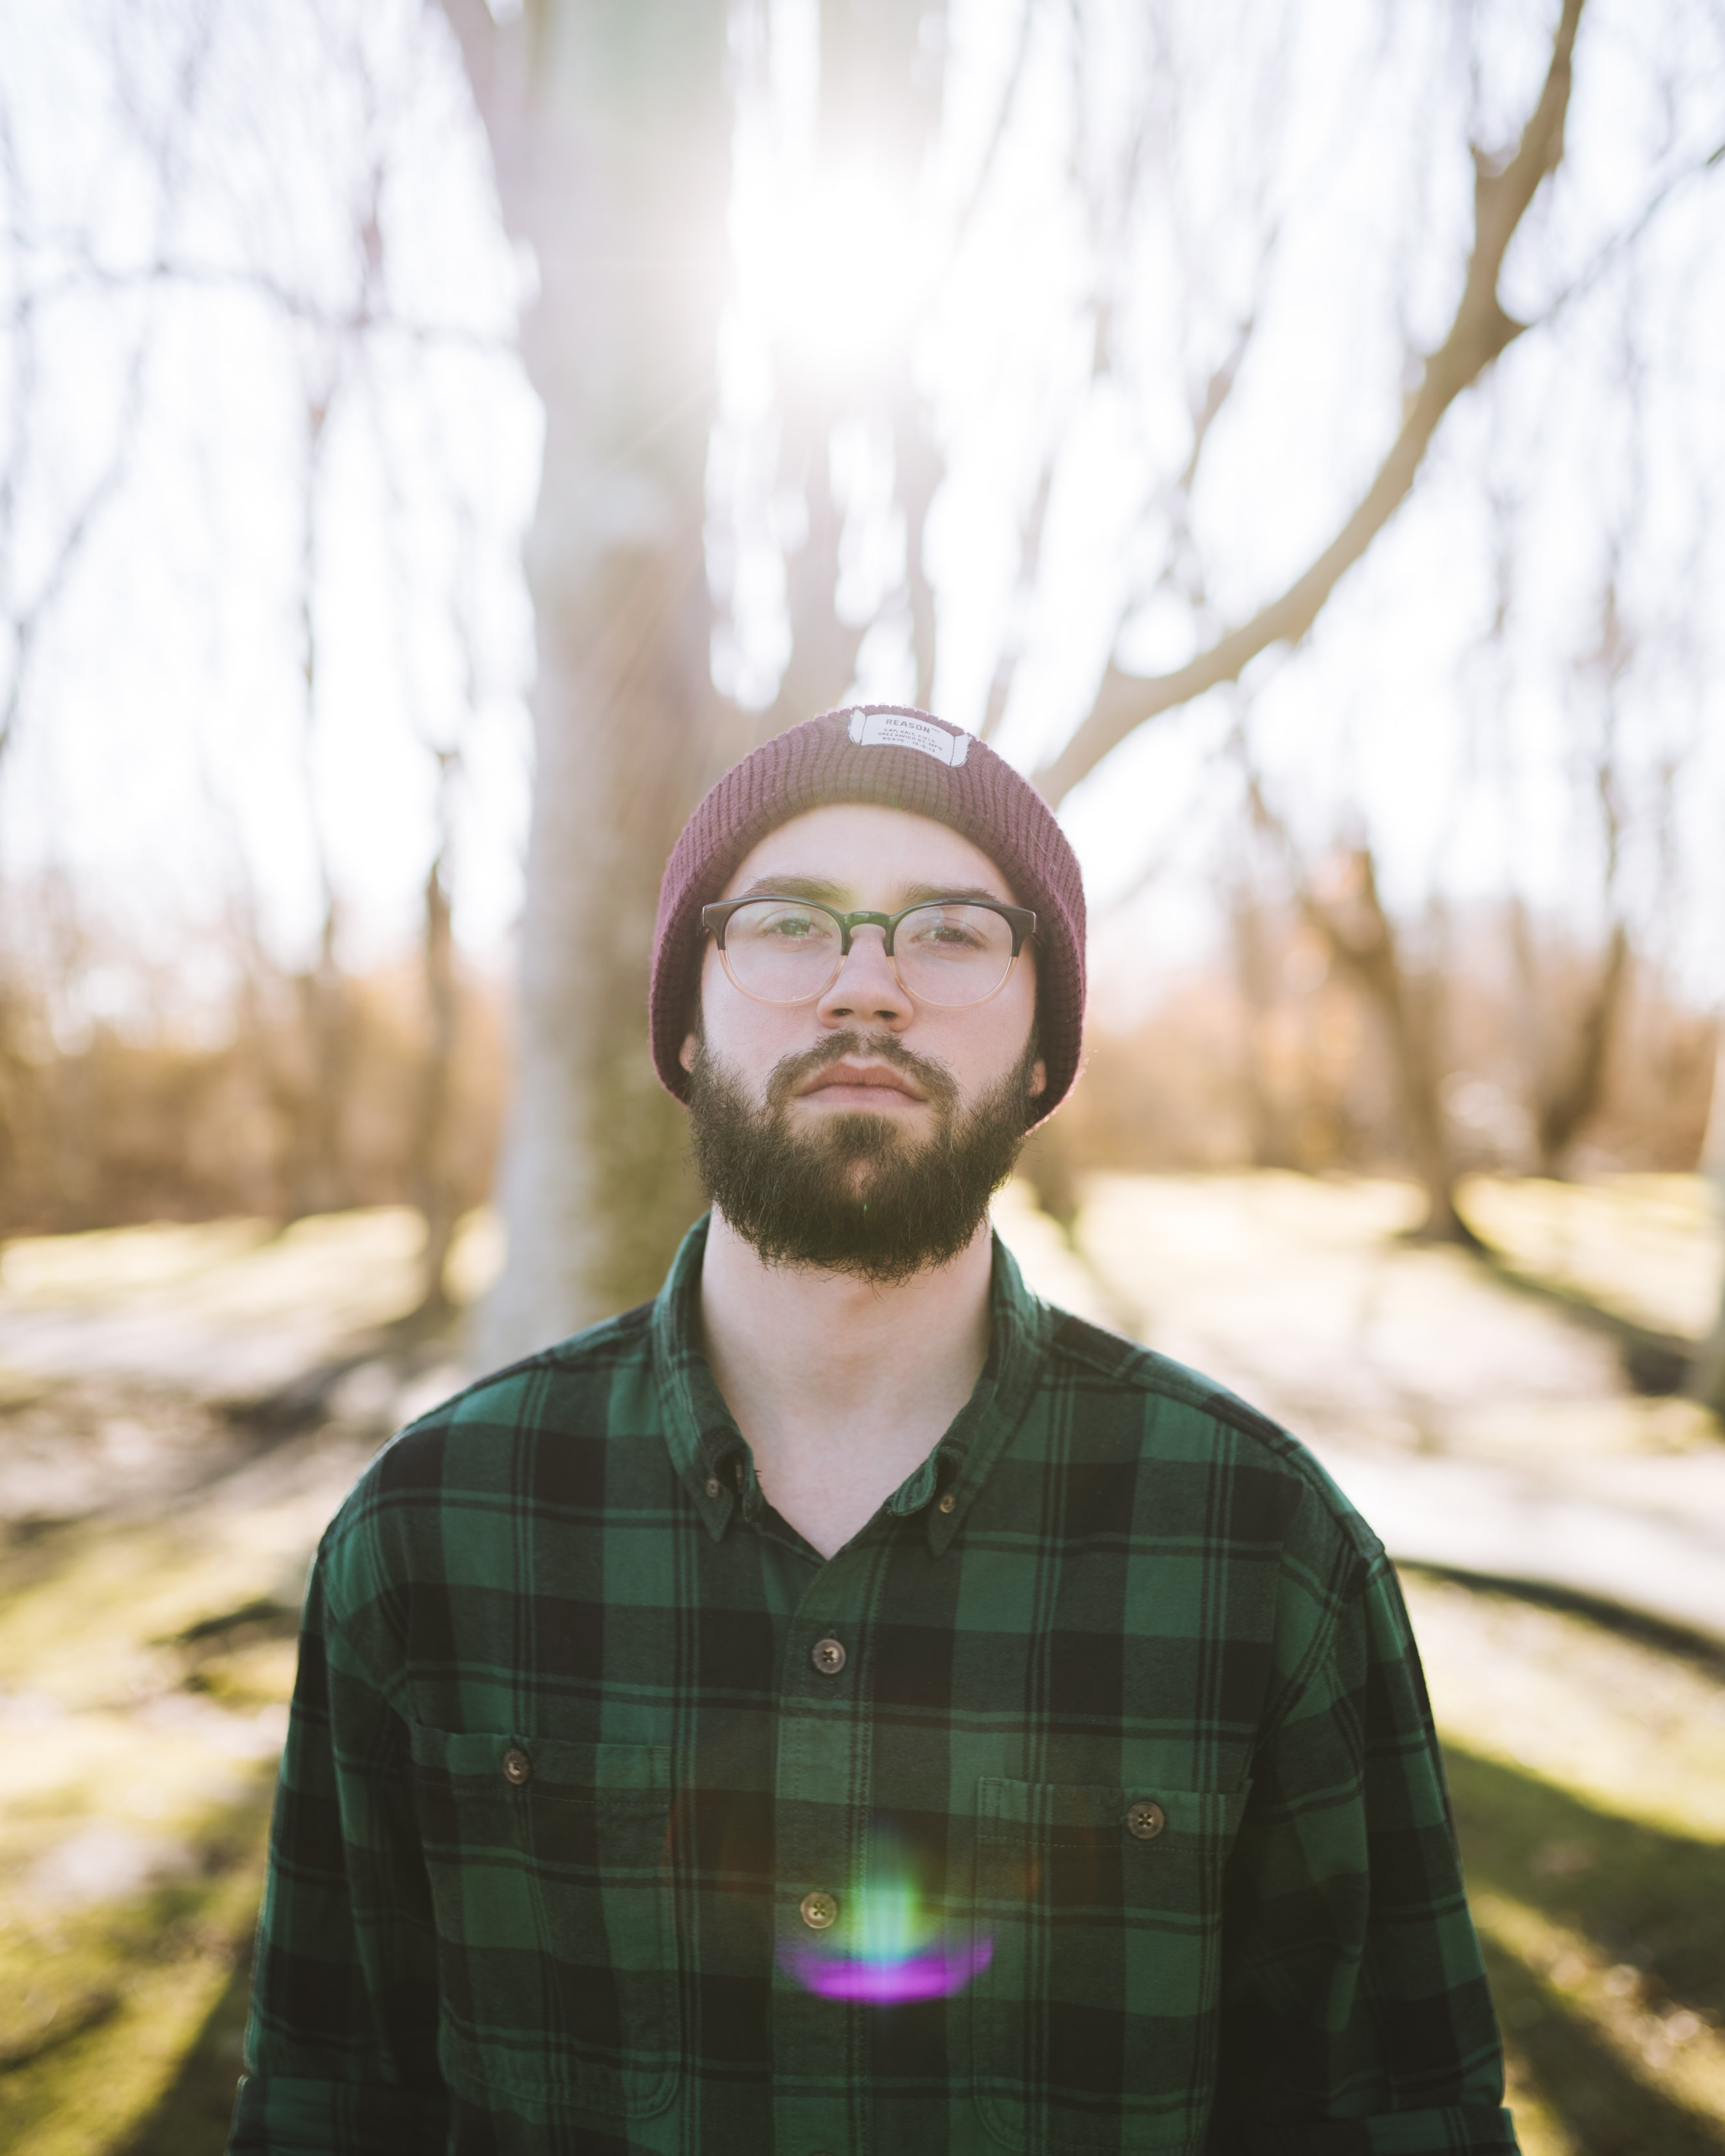 shallow focus photography of man standing near trees